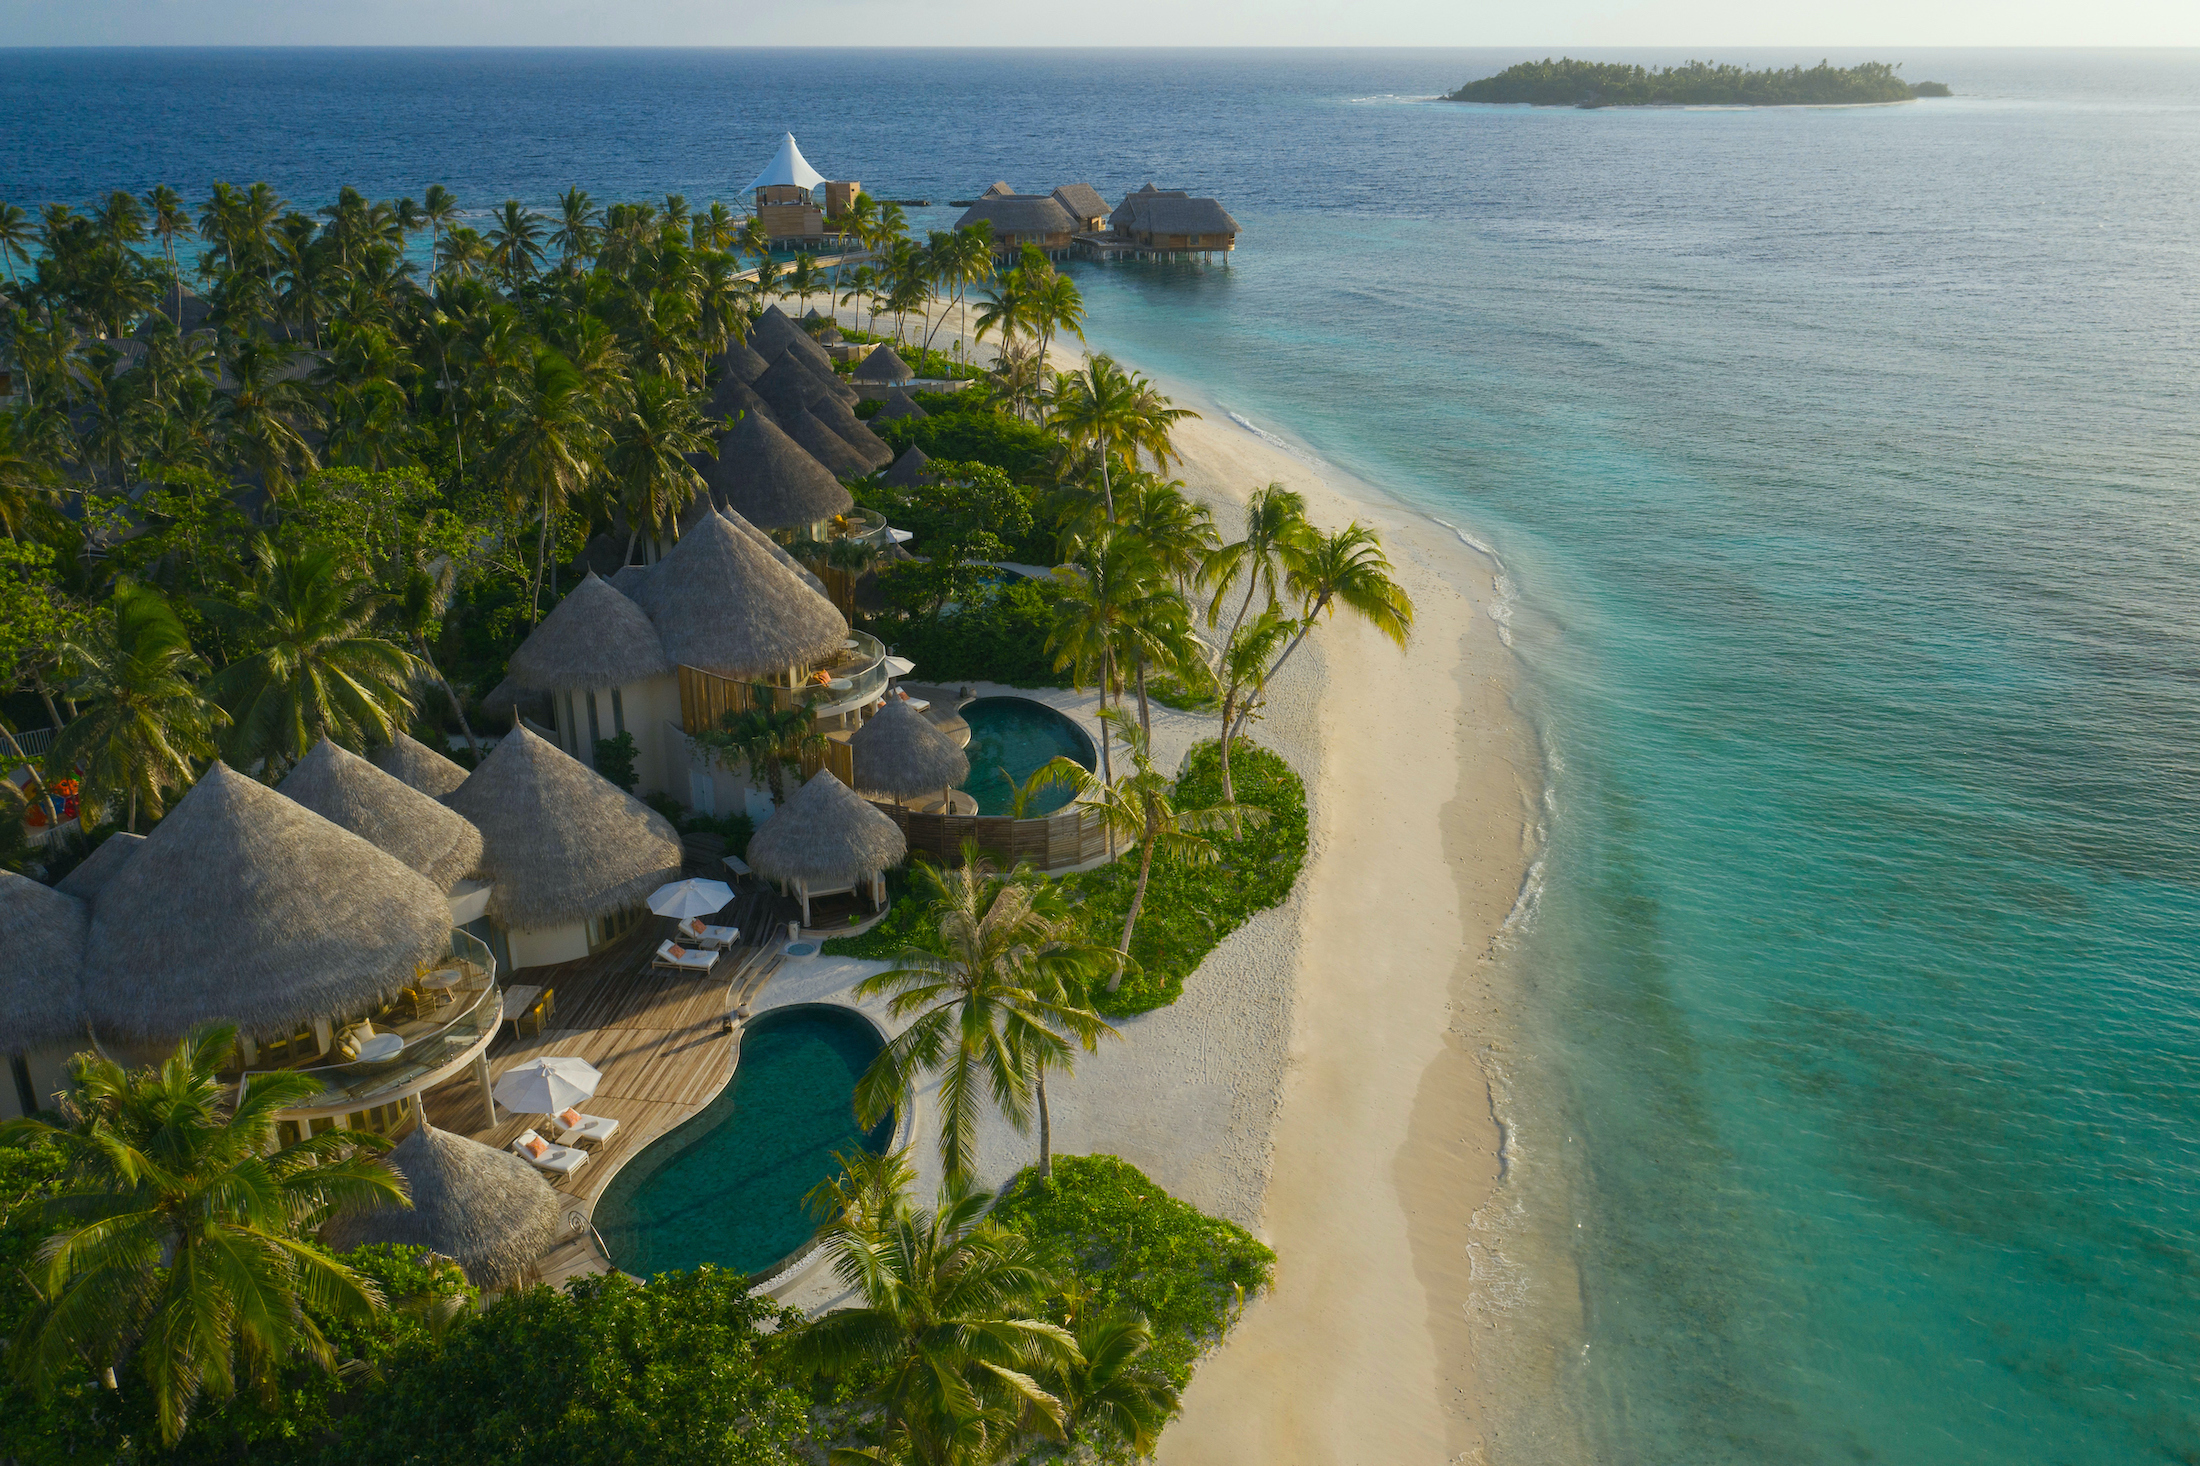 Self-Isolate in Boho Luxe Style this Winter at The Nautilus Maldives